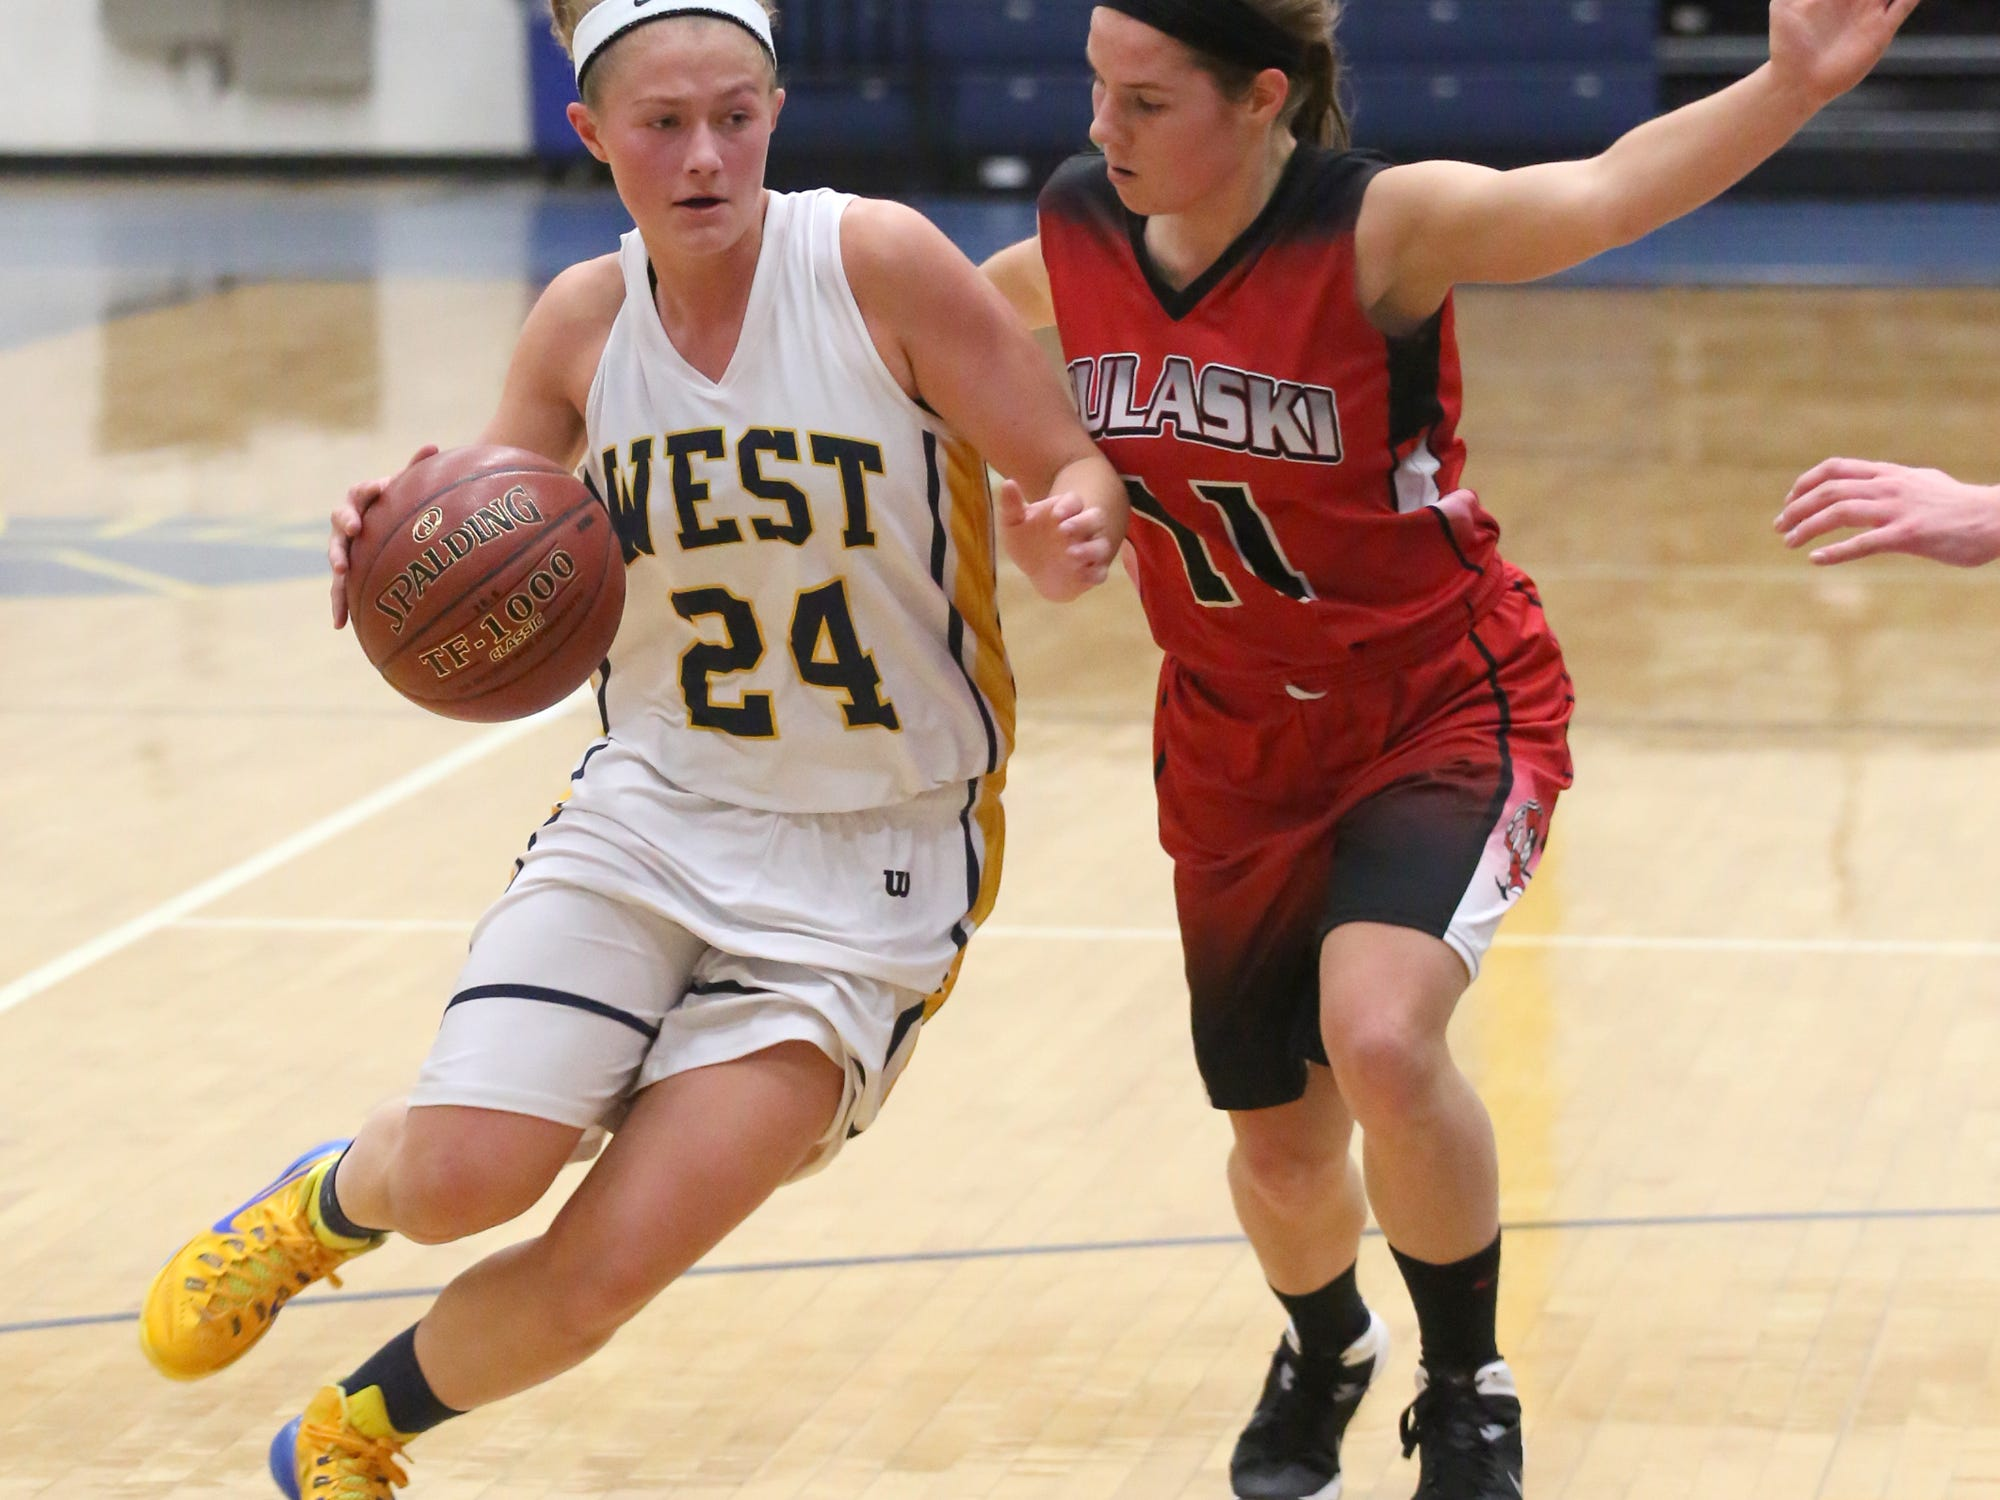 Wausau West senior Jasmin Samz was named the Gannett Central Wisconsin Media girls basketball player of they year. She led the Wisconsin Valley in scoring and was the conference's player of the year.